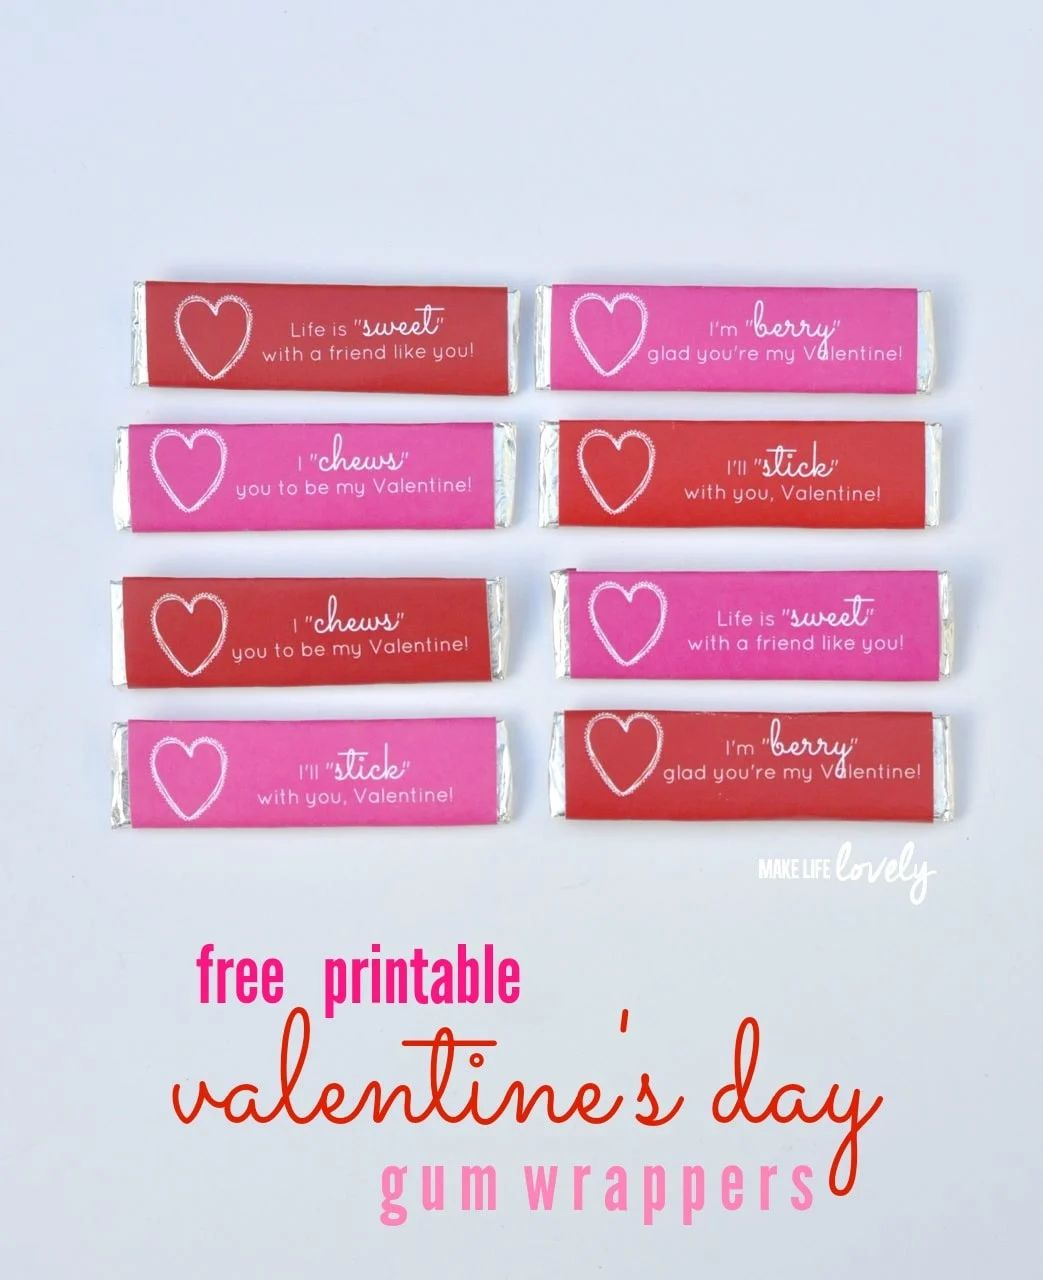 printable chocolate wrappers